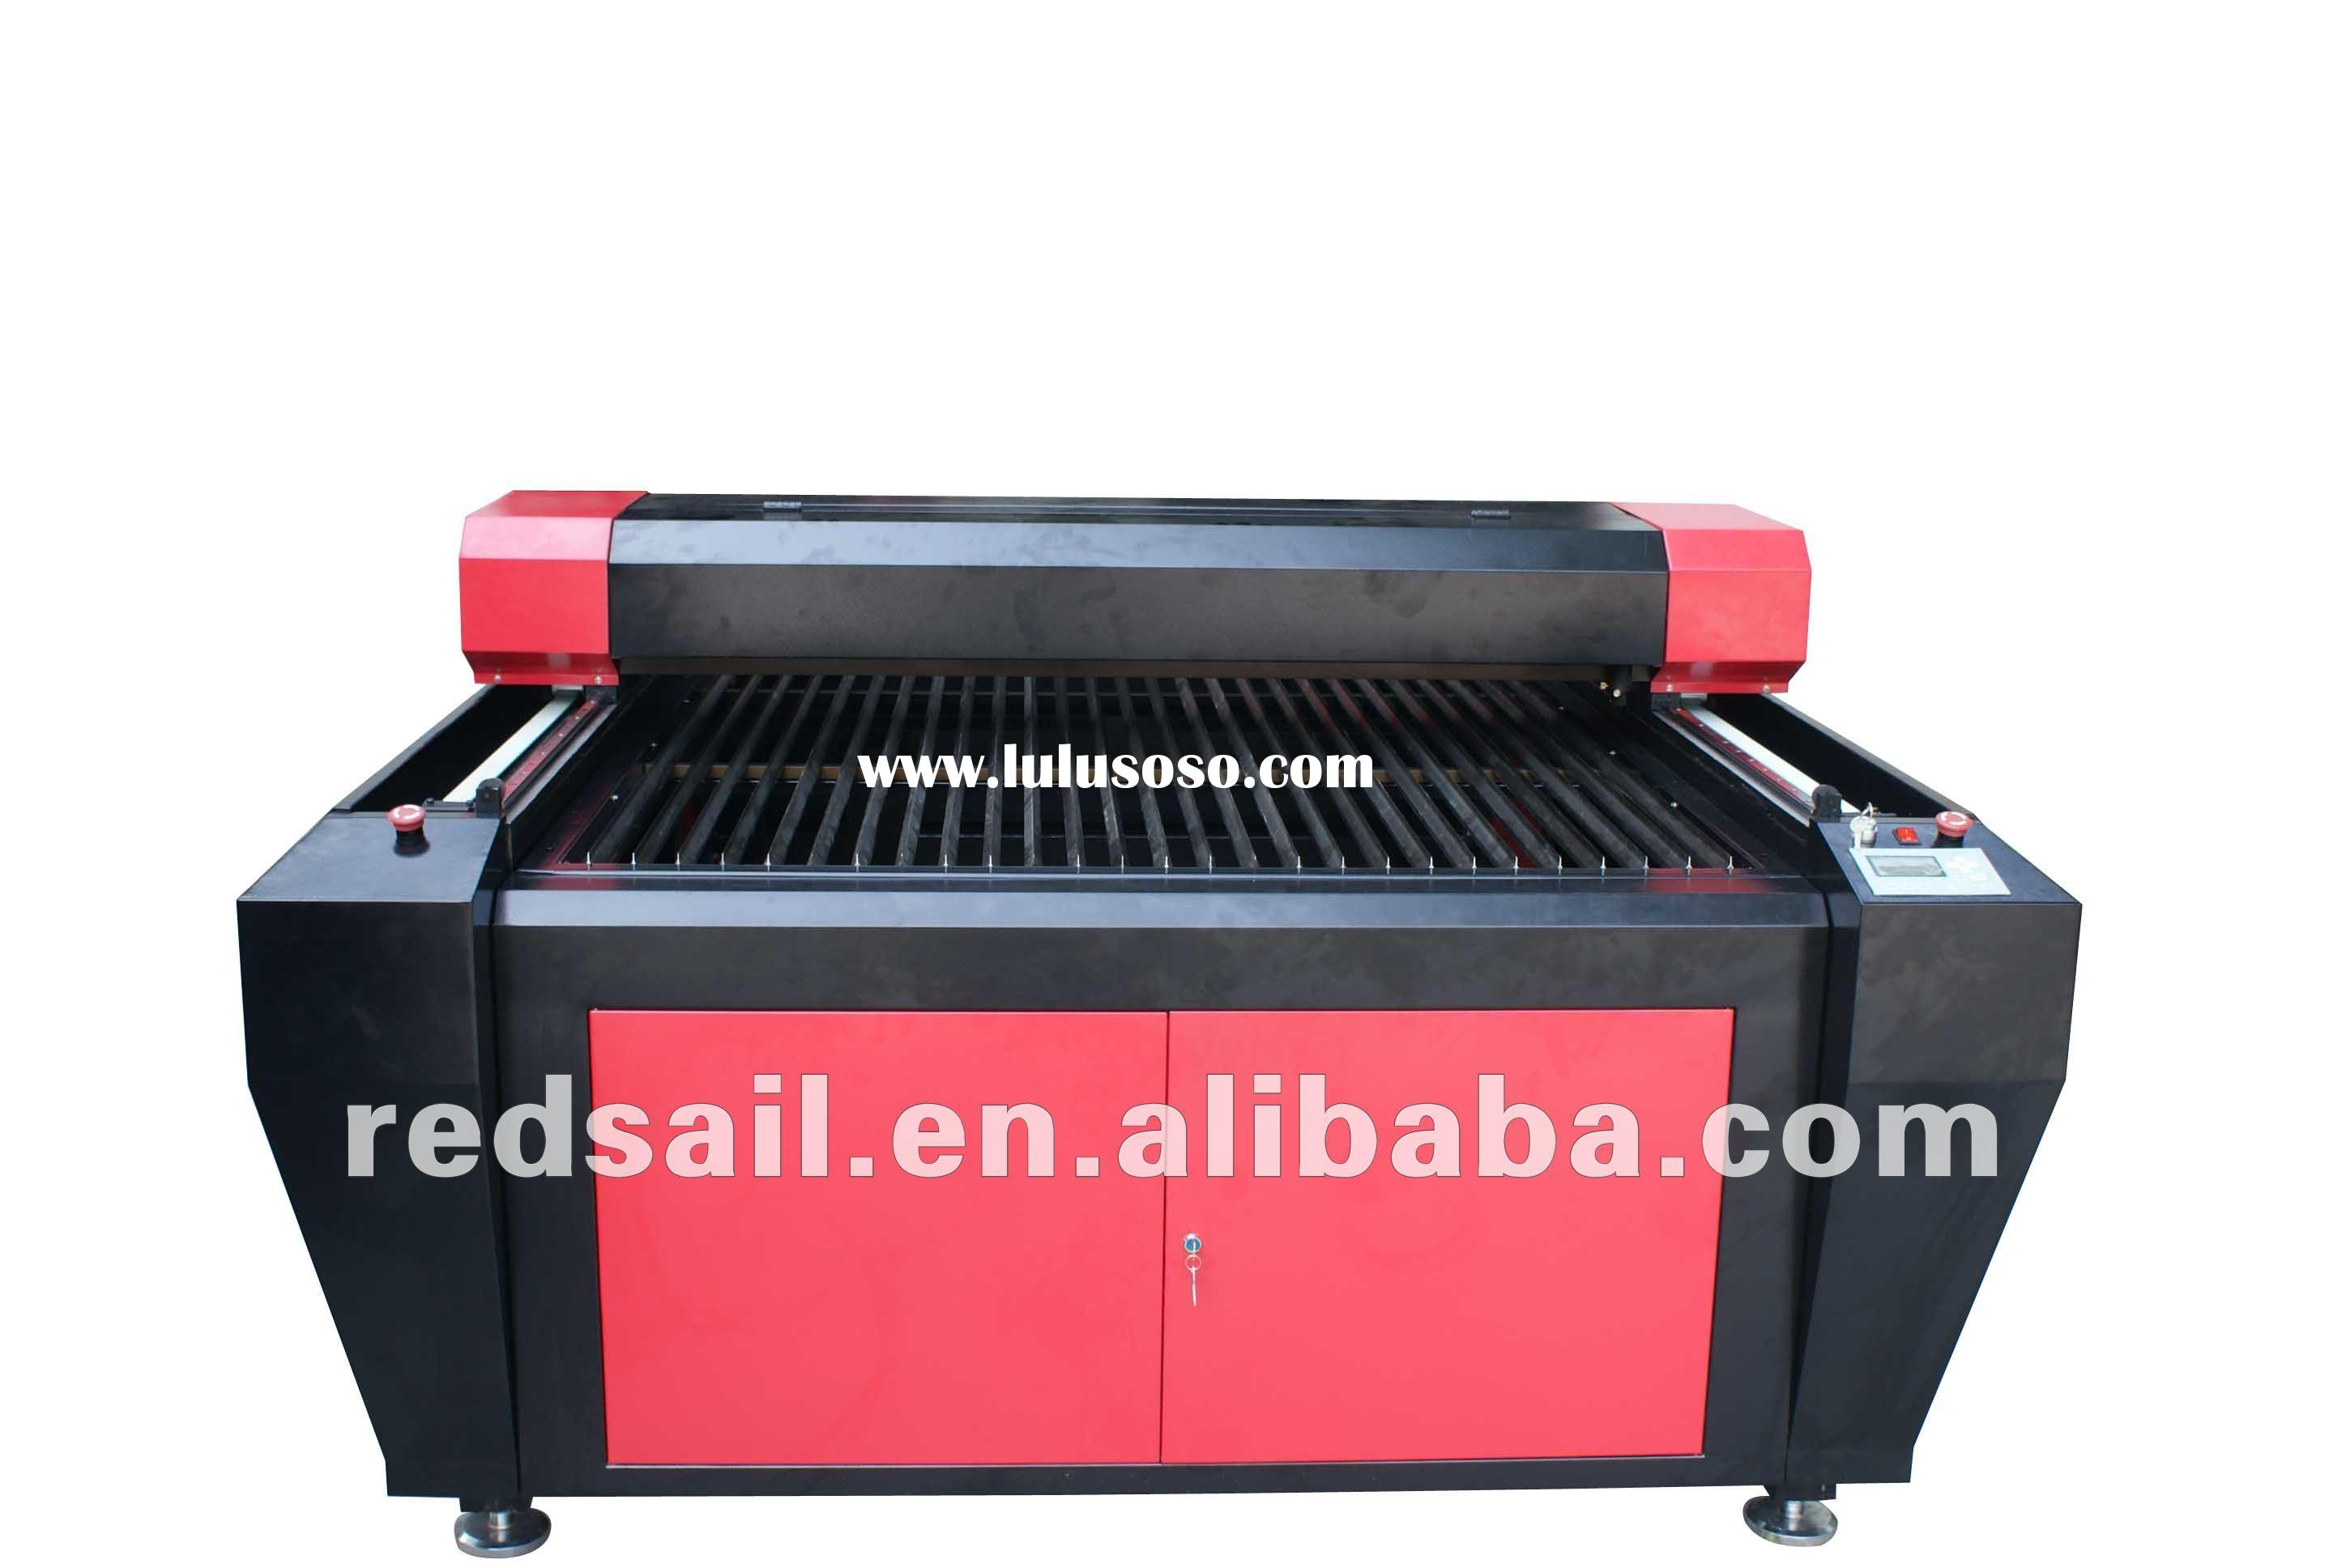 CM1325,Flat bed laser cutting machine from China,1300*2500mm